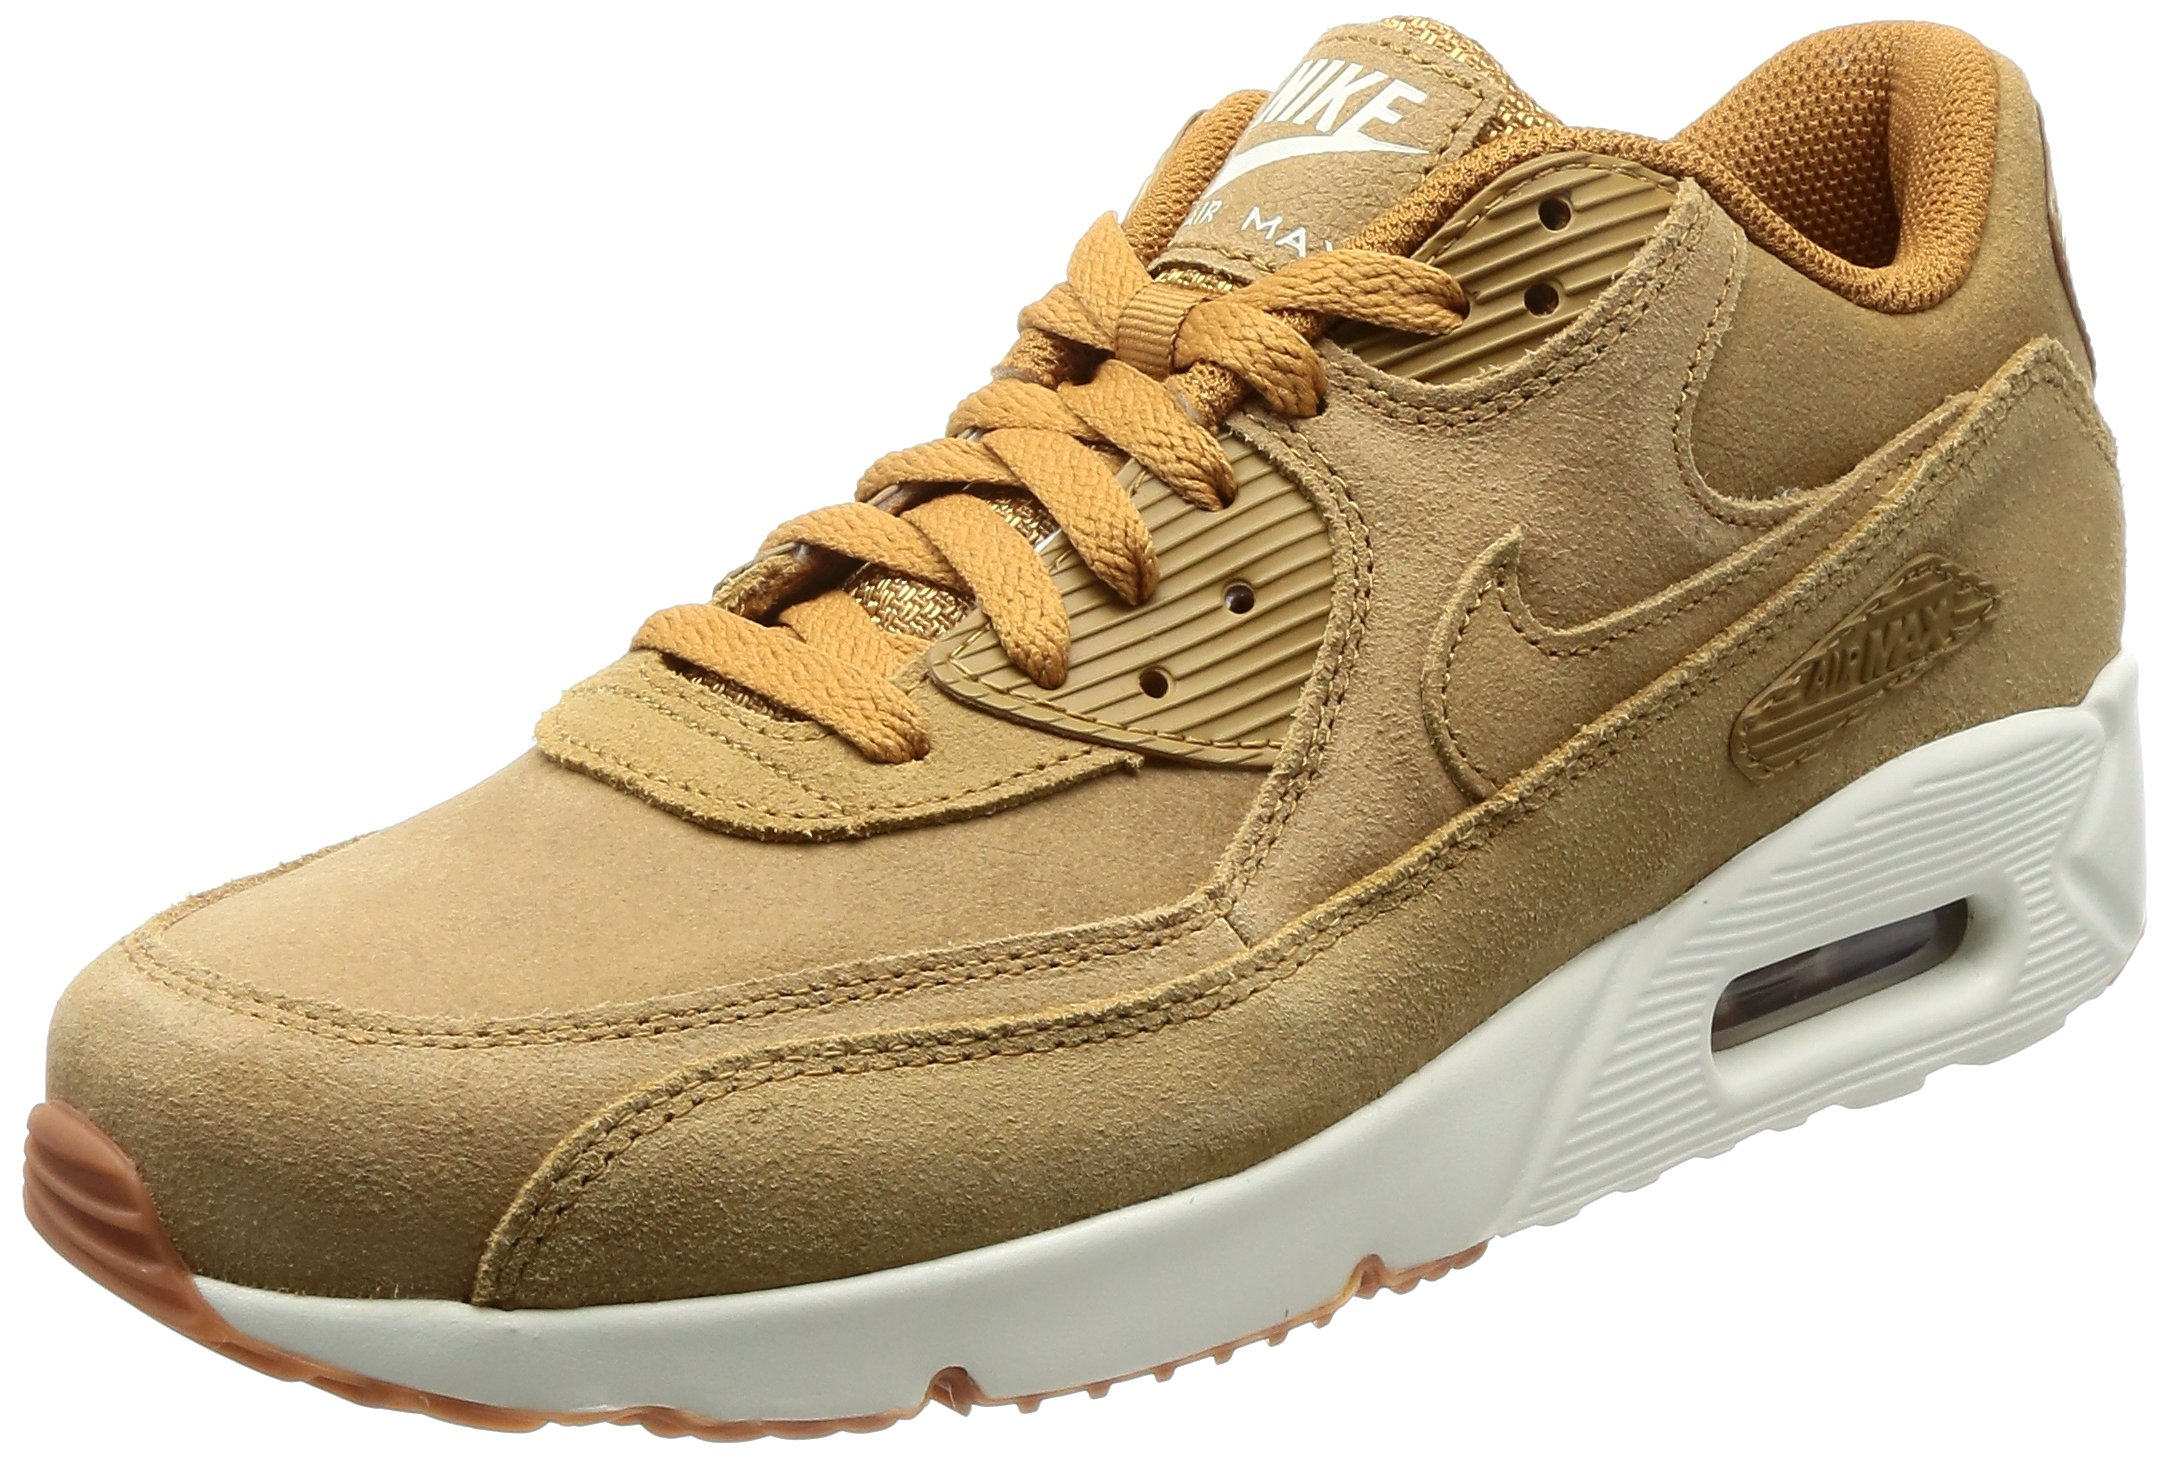 3b241e5053 Galleon - Nike Mens Air Max 90 Ultra 2.0 LTR Running Shoe (10.5)